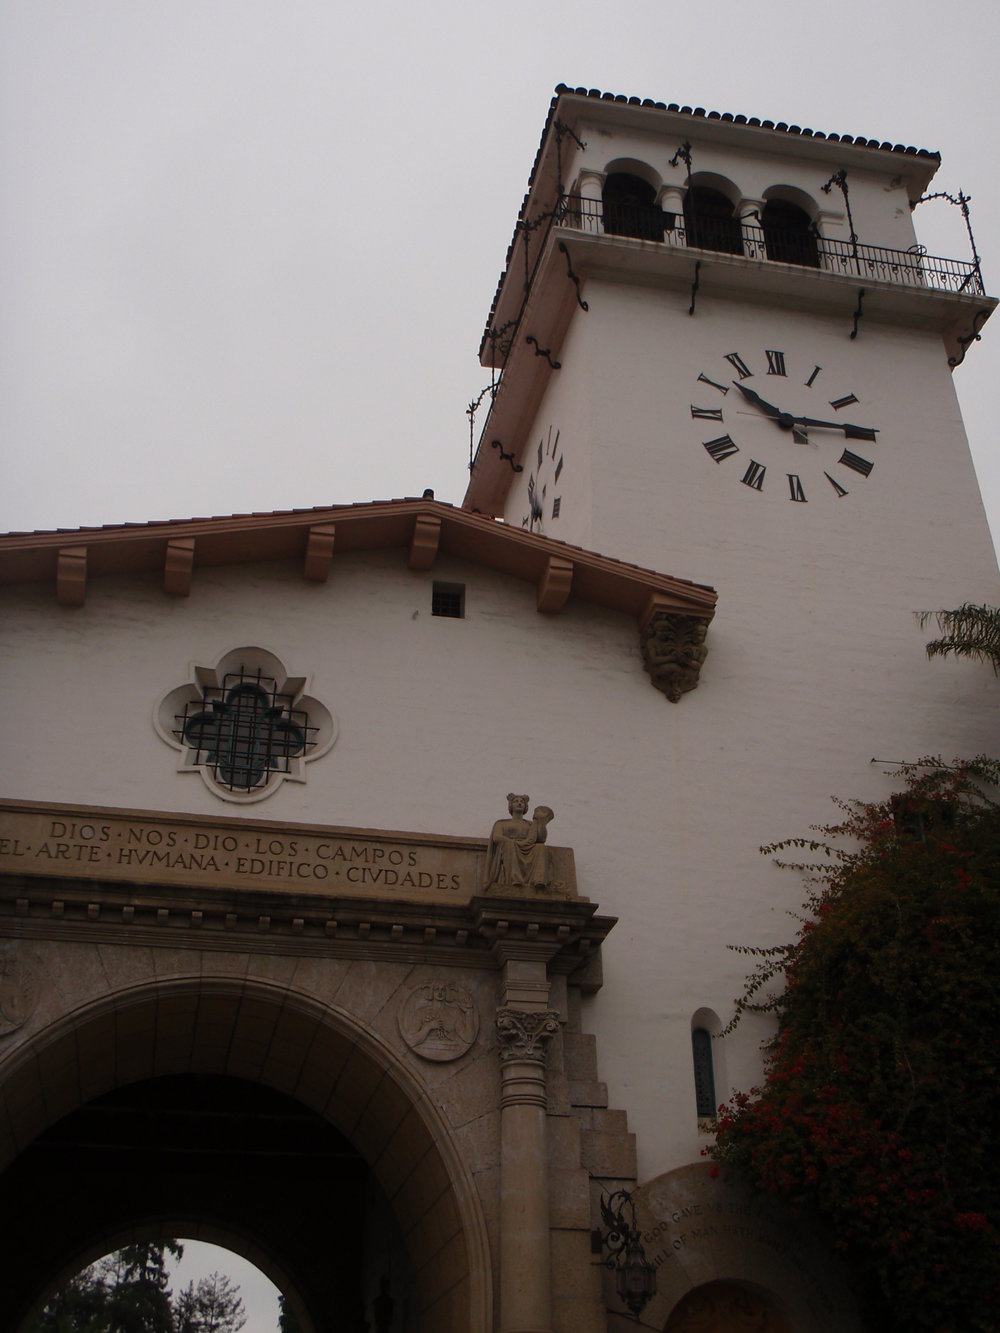 Courthouse and clock tower, Santa Barbara, CA